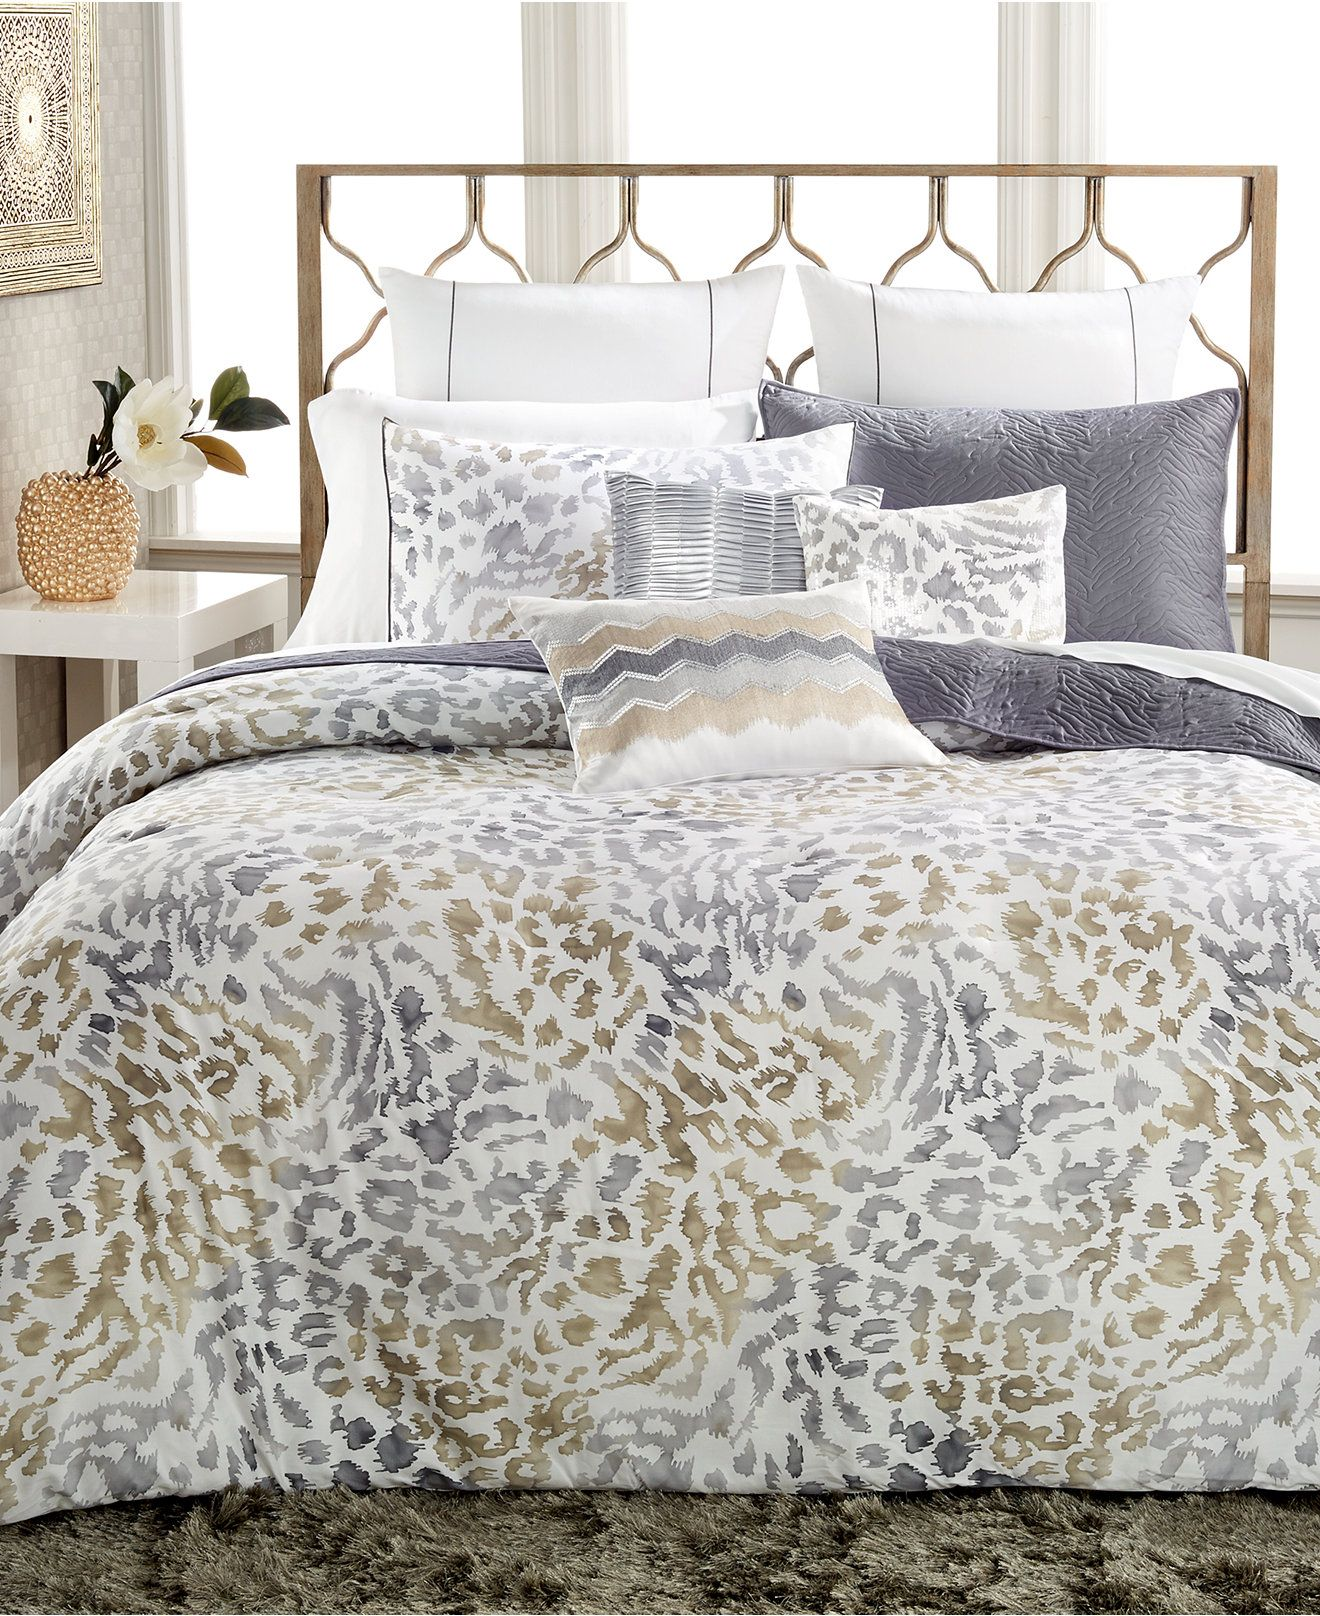 inc international concepts cheetah graphite comforter and duvet  - inc international concepts cheetah graphite comforter and duvet cover sets bedding collections  bed